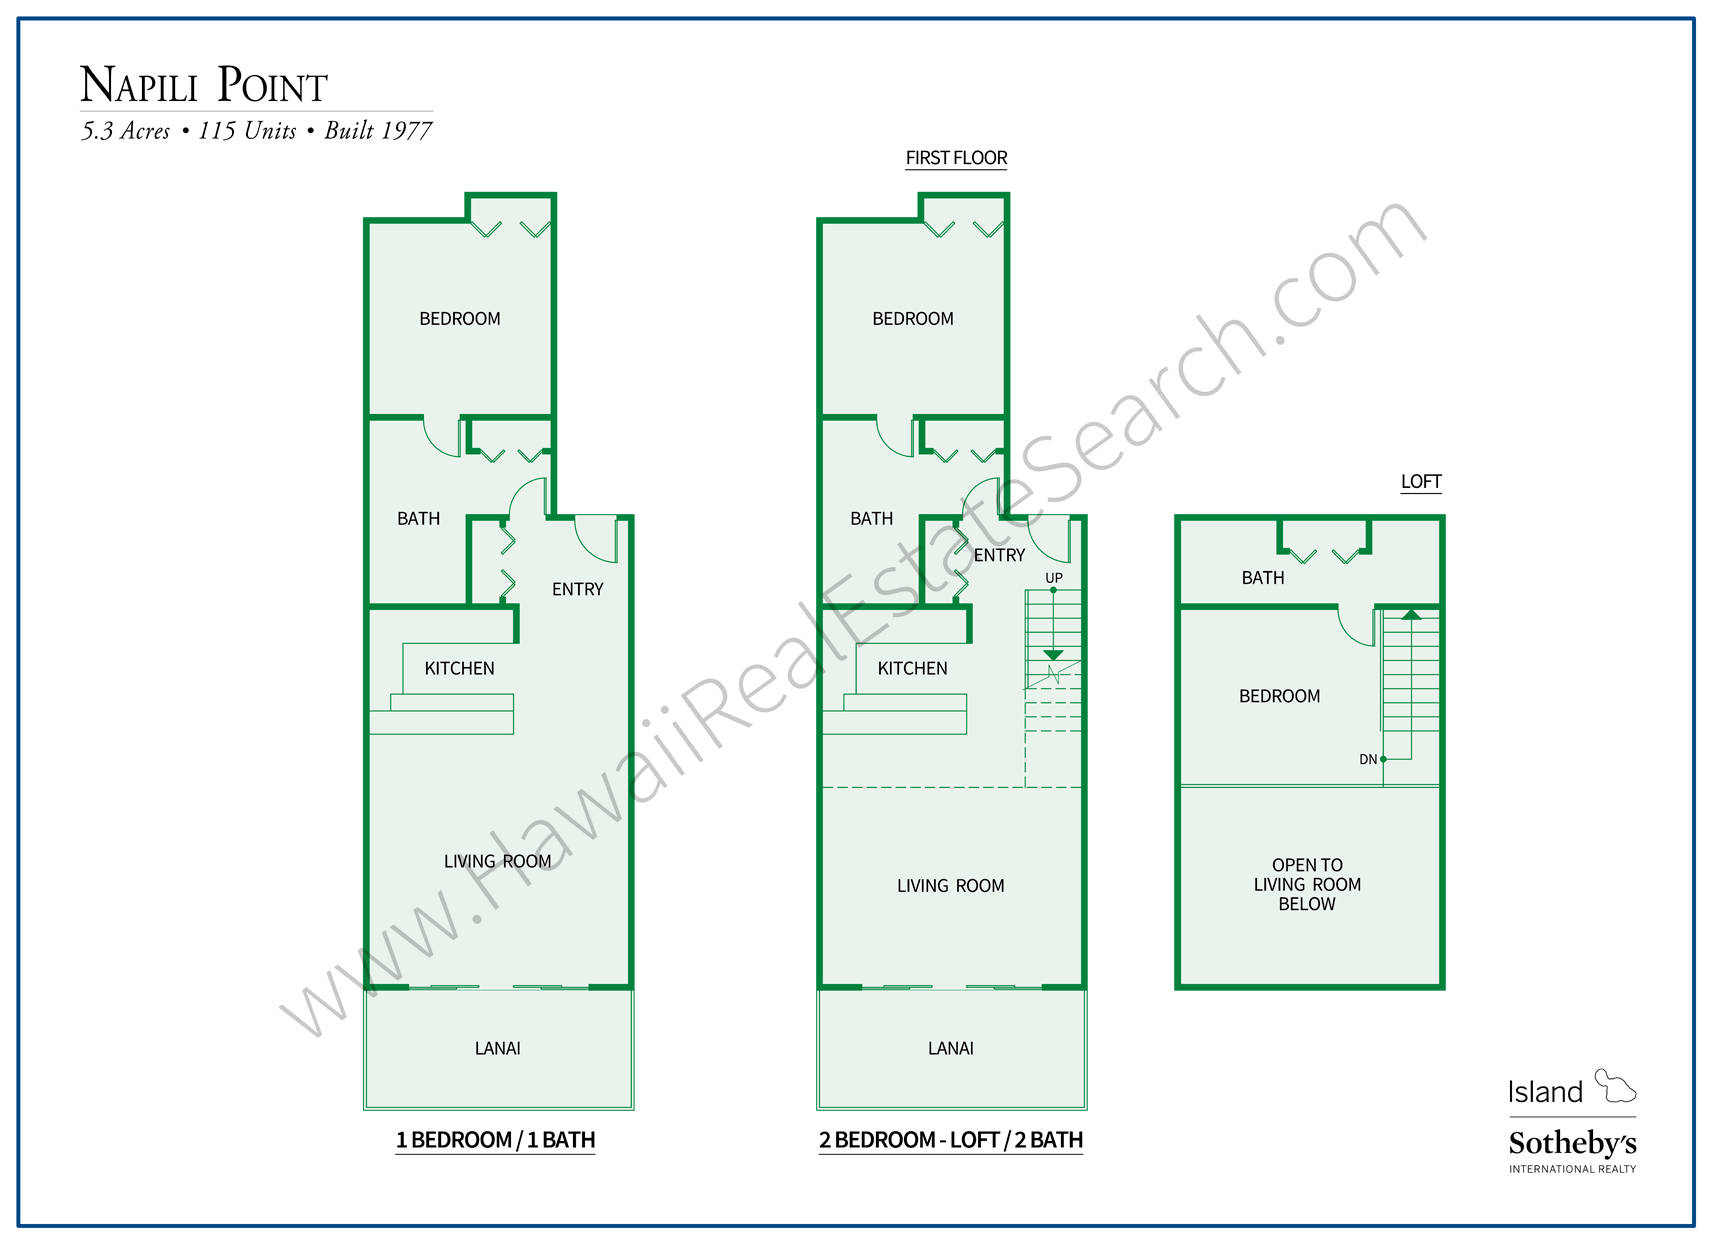 Napili Point Floor Plans Updated 2018